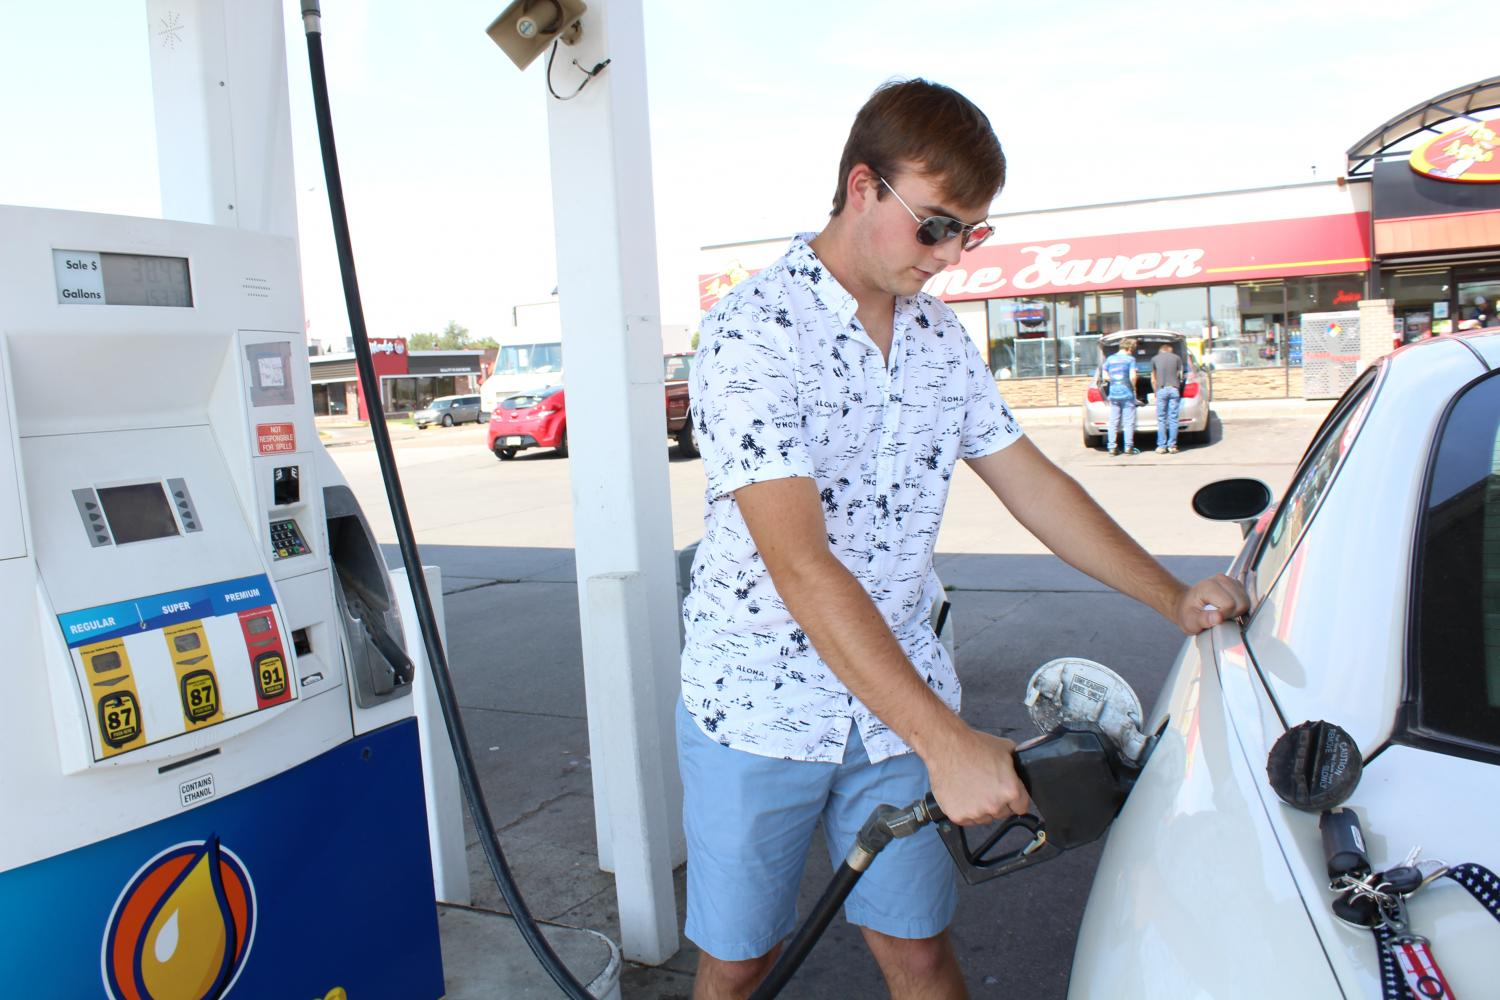 Junior Jake Gutschenritter filling up on gas at Time Saver. A full tank used to cost around 35 dollars for him. Now he pays on average 38 dollars.